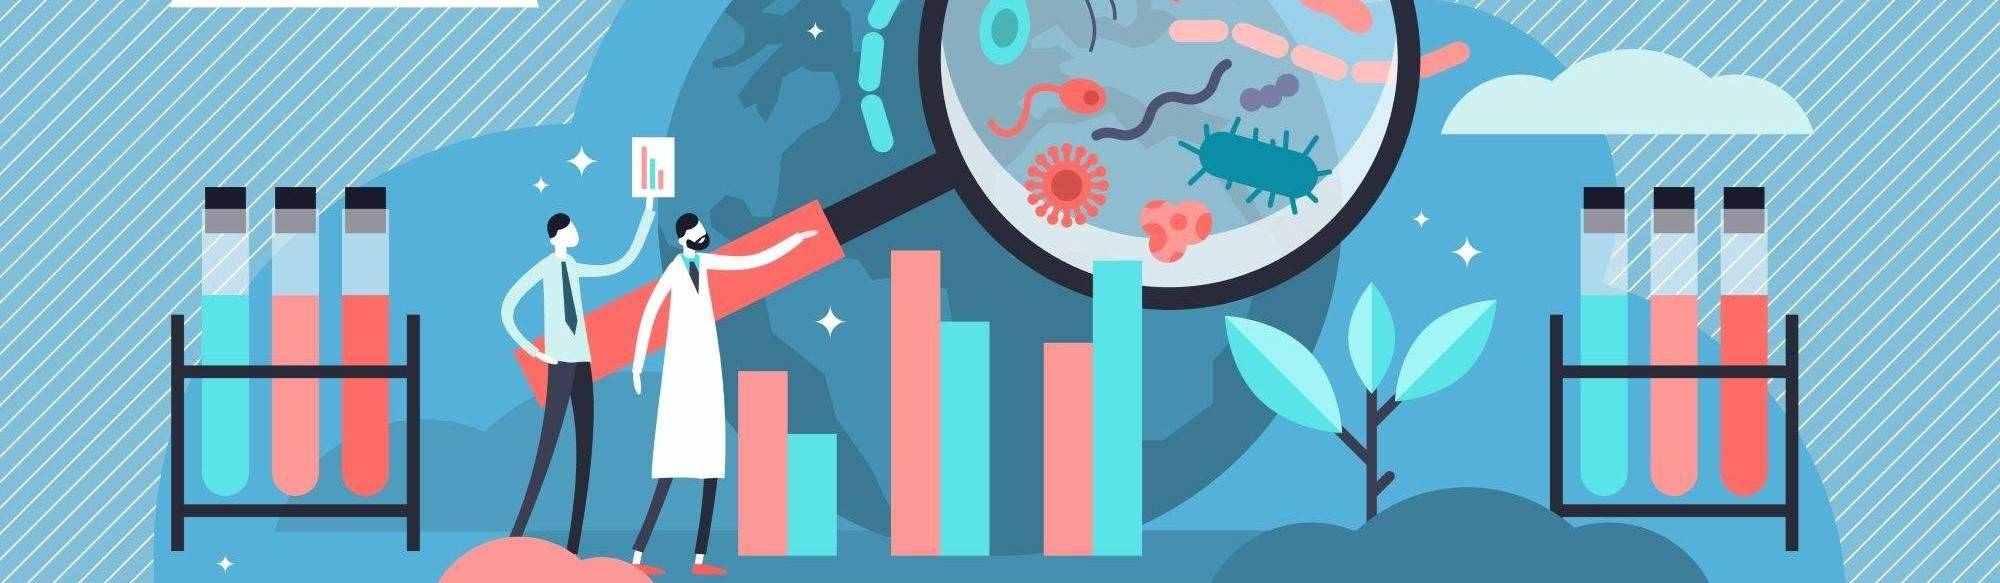 Epidemiology Vector Illustration